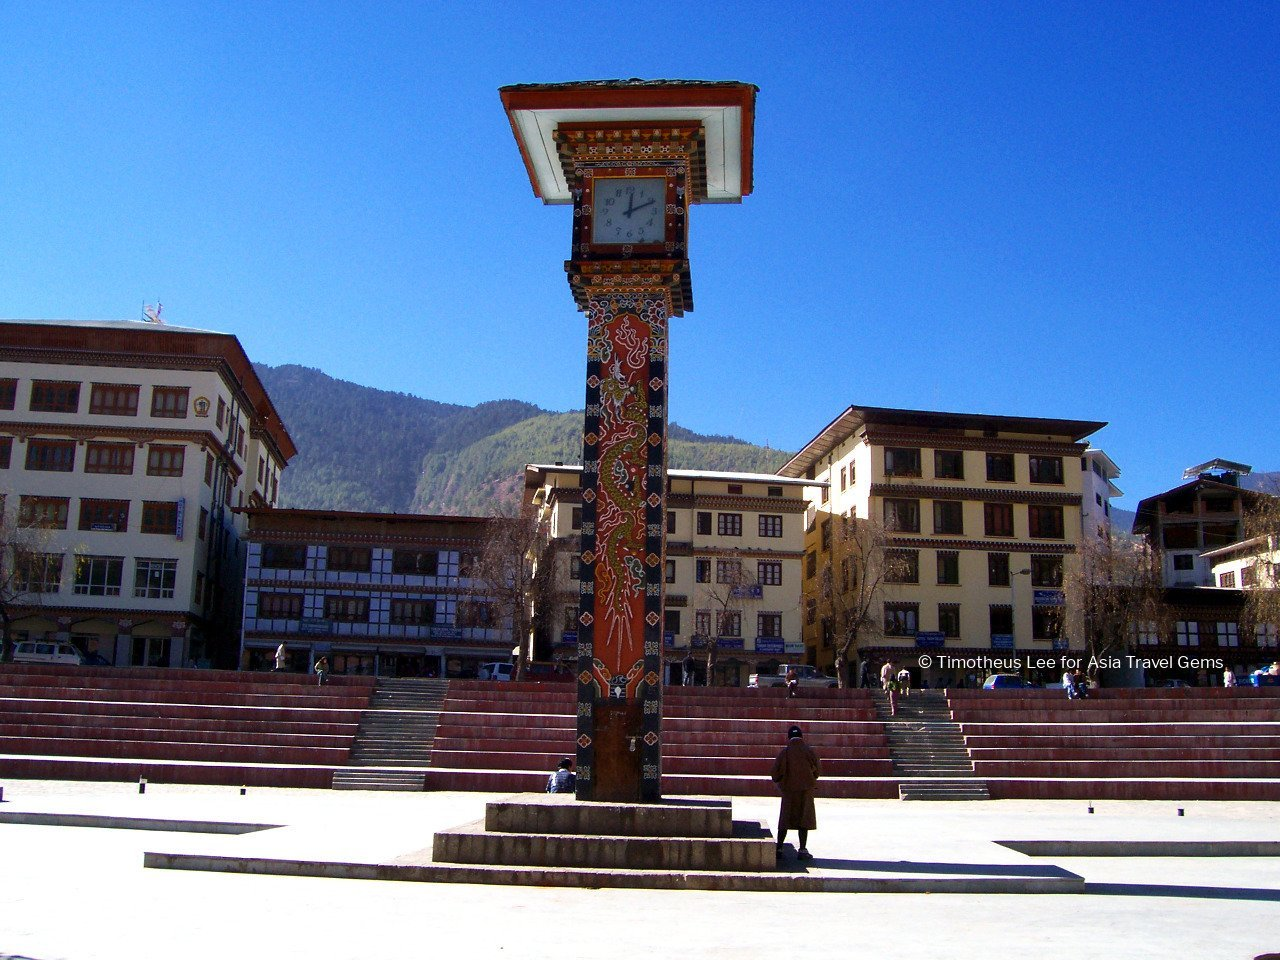 Best Places To Visit In Thimphu Bhutan - Clock Tower Square, Front View